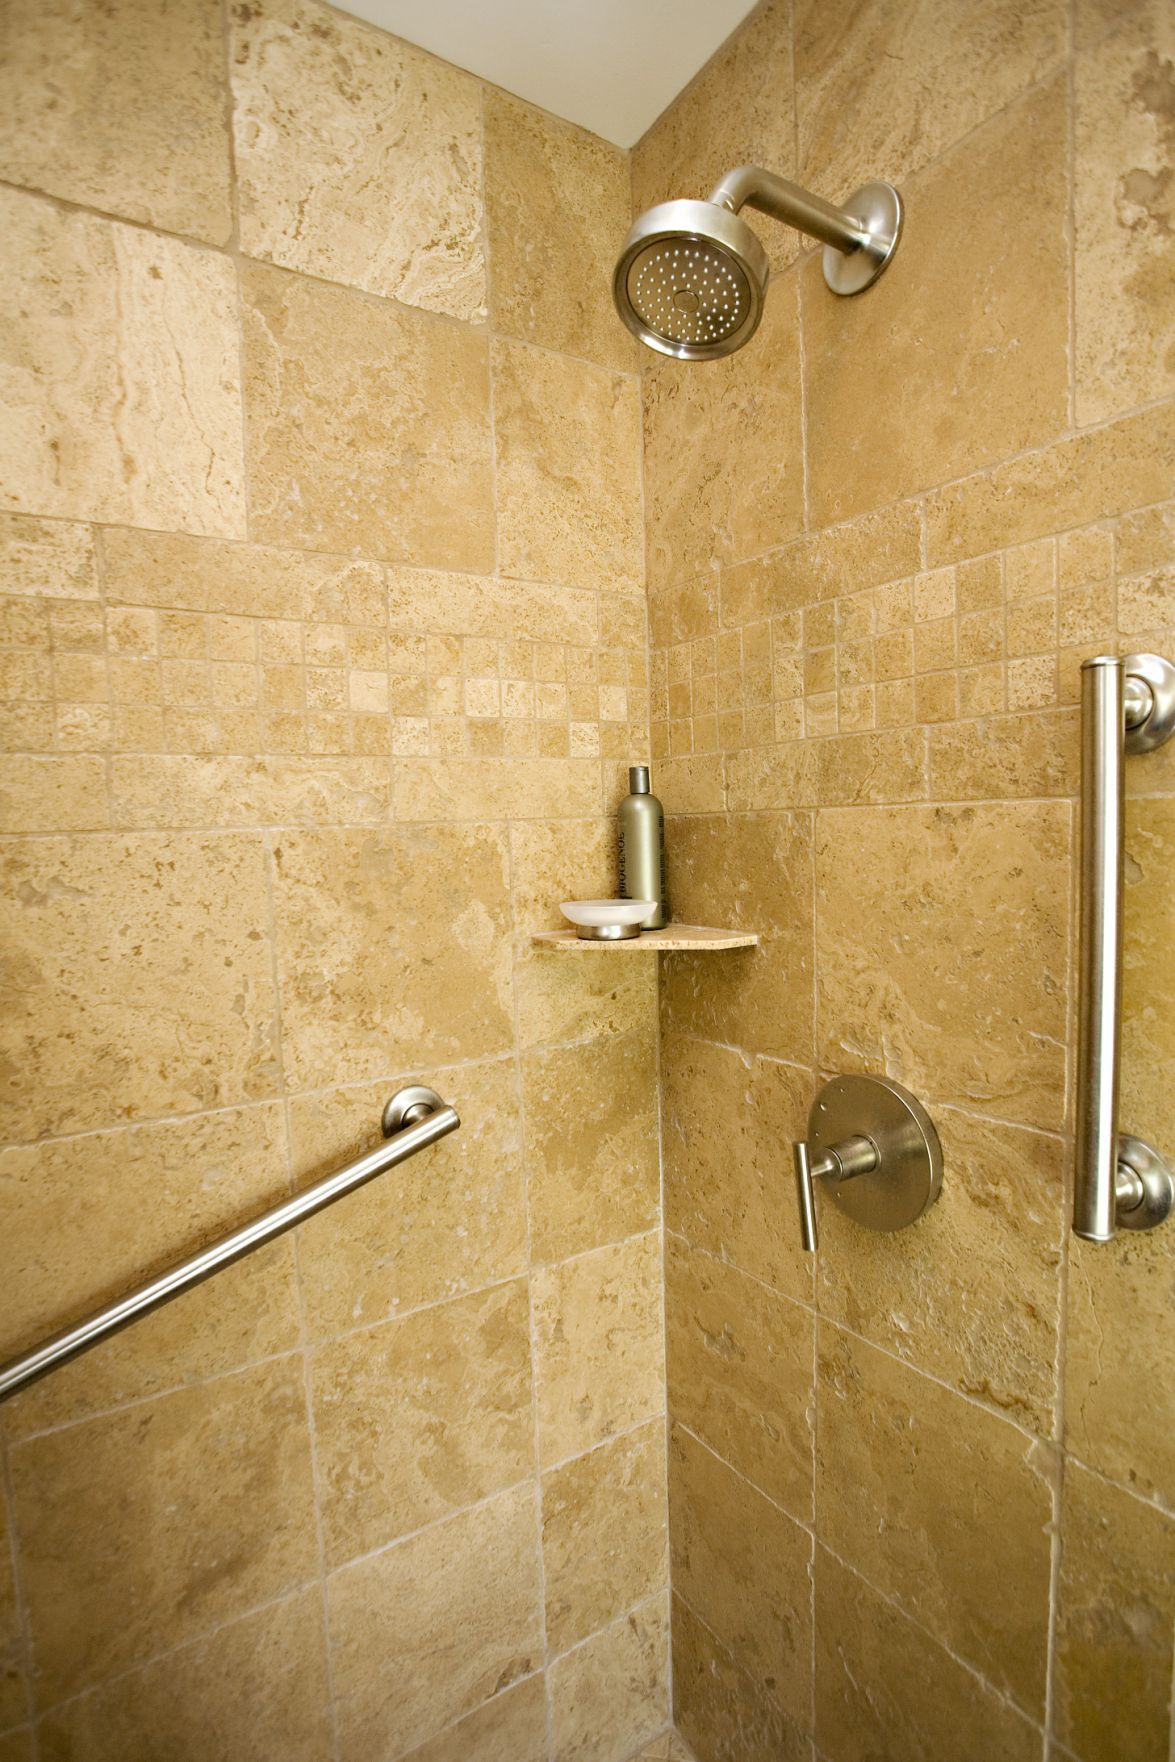 Can I Drill Into Corian To Install Grab Bars Home Life Health